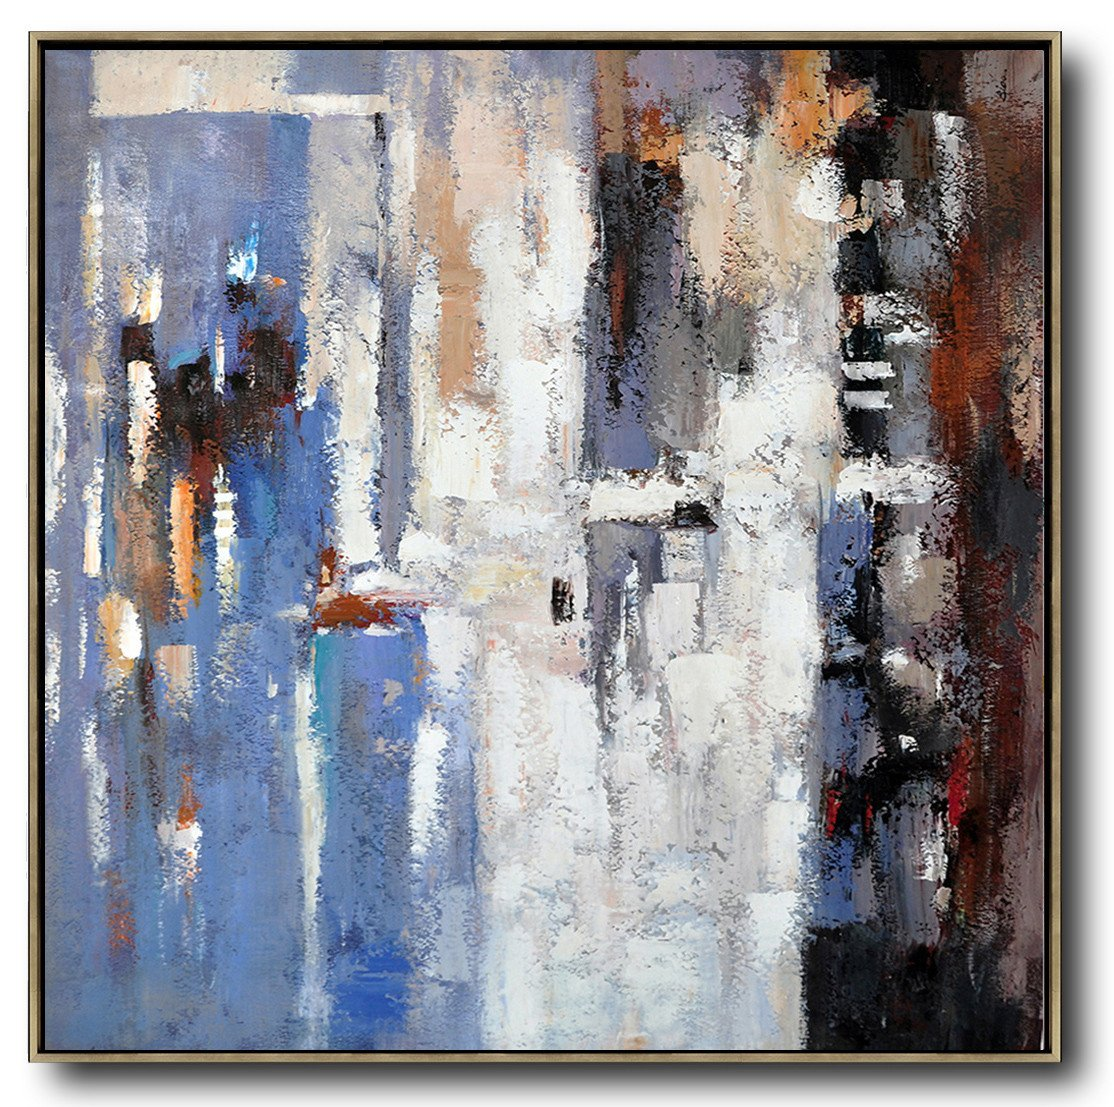 Large Contemporary Art Acrylic Painting,Oversized Contemporary Art,Canvas Wall Art Home Decor,Blue,White,Brown,Red.etc